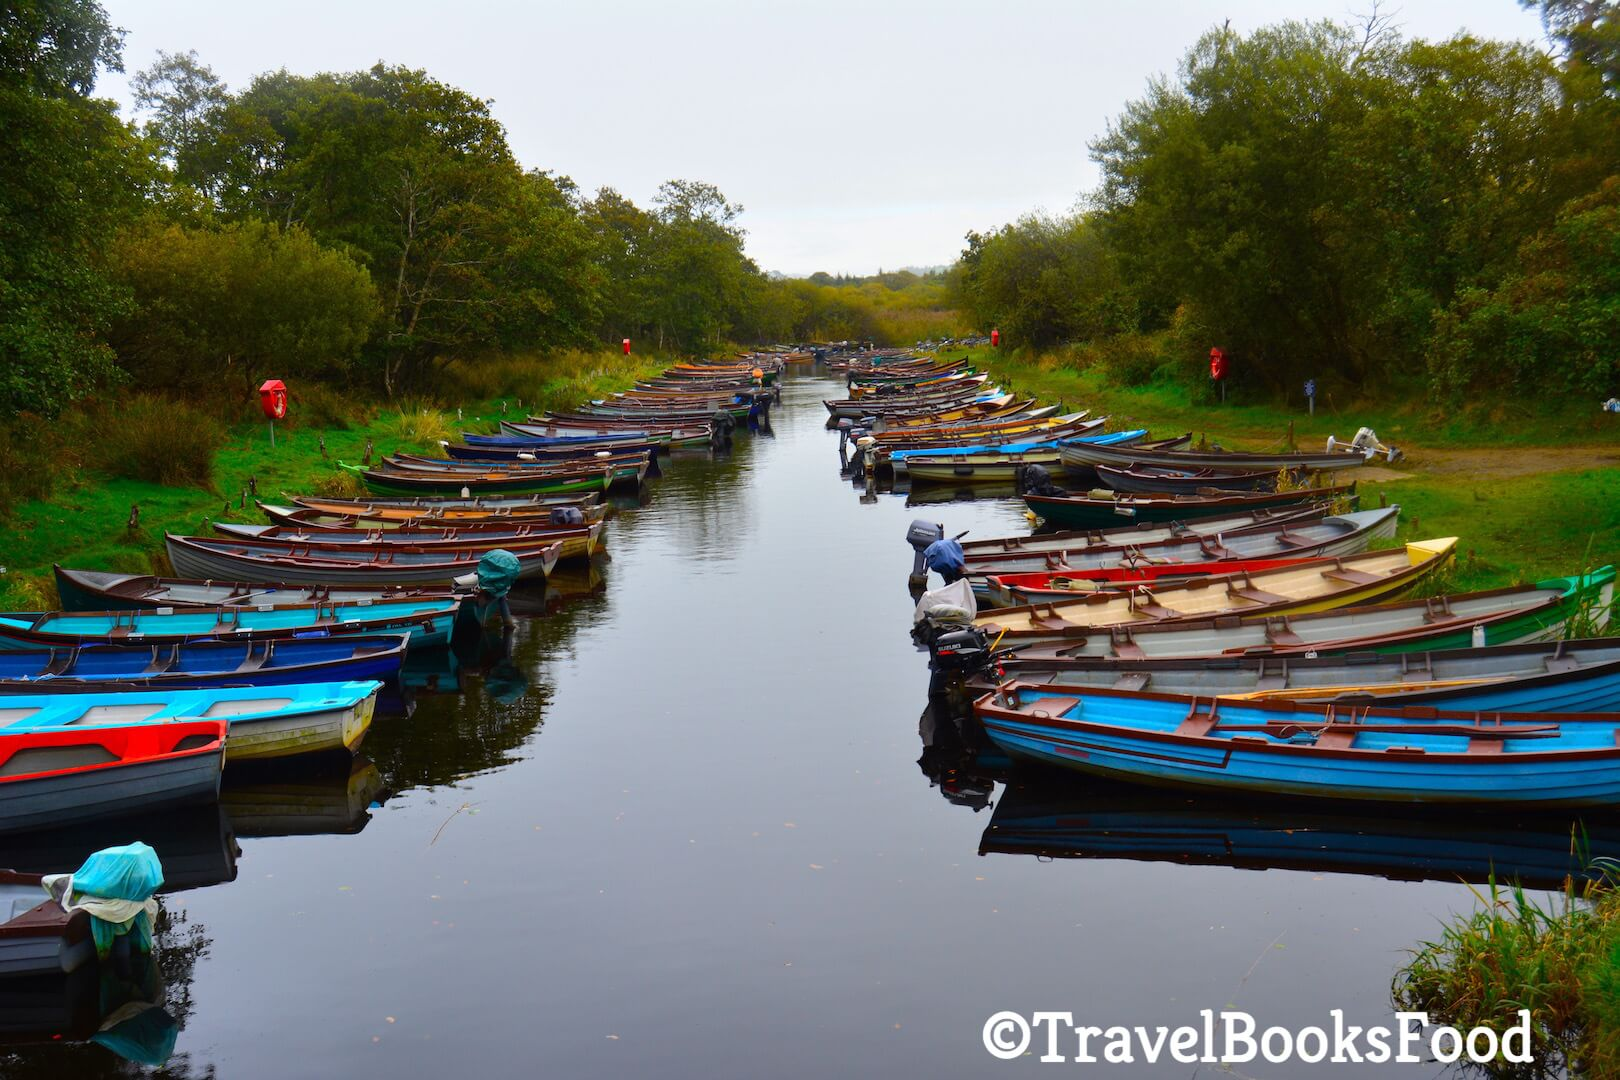 A photo of at least 20 colorful fishing boats in Killarney, Ireland.